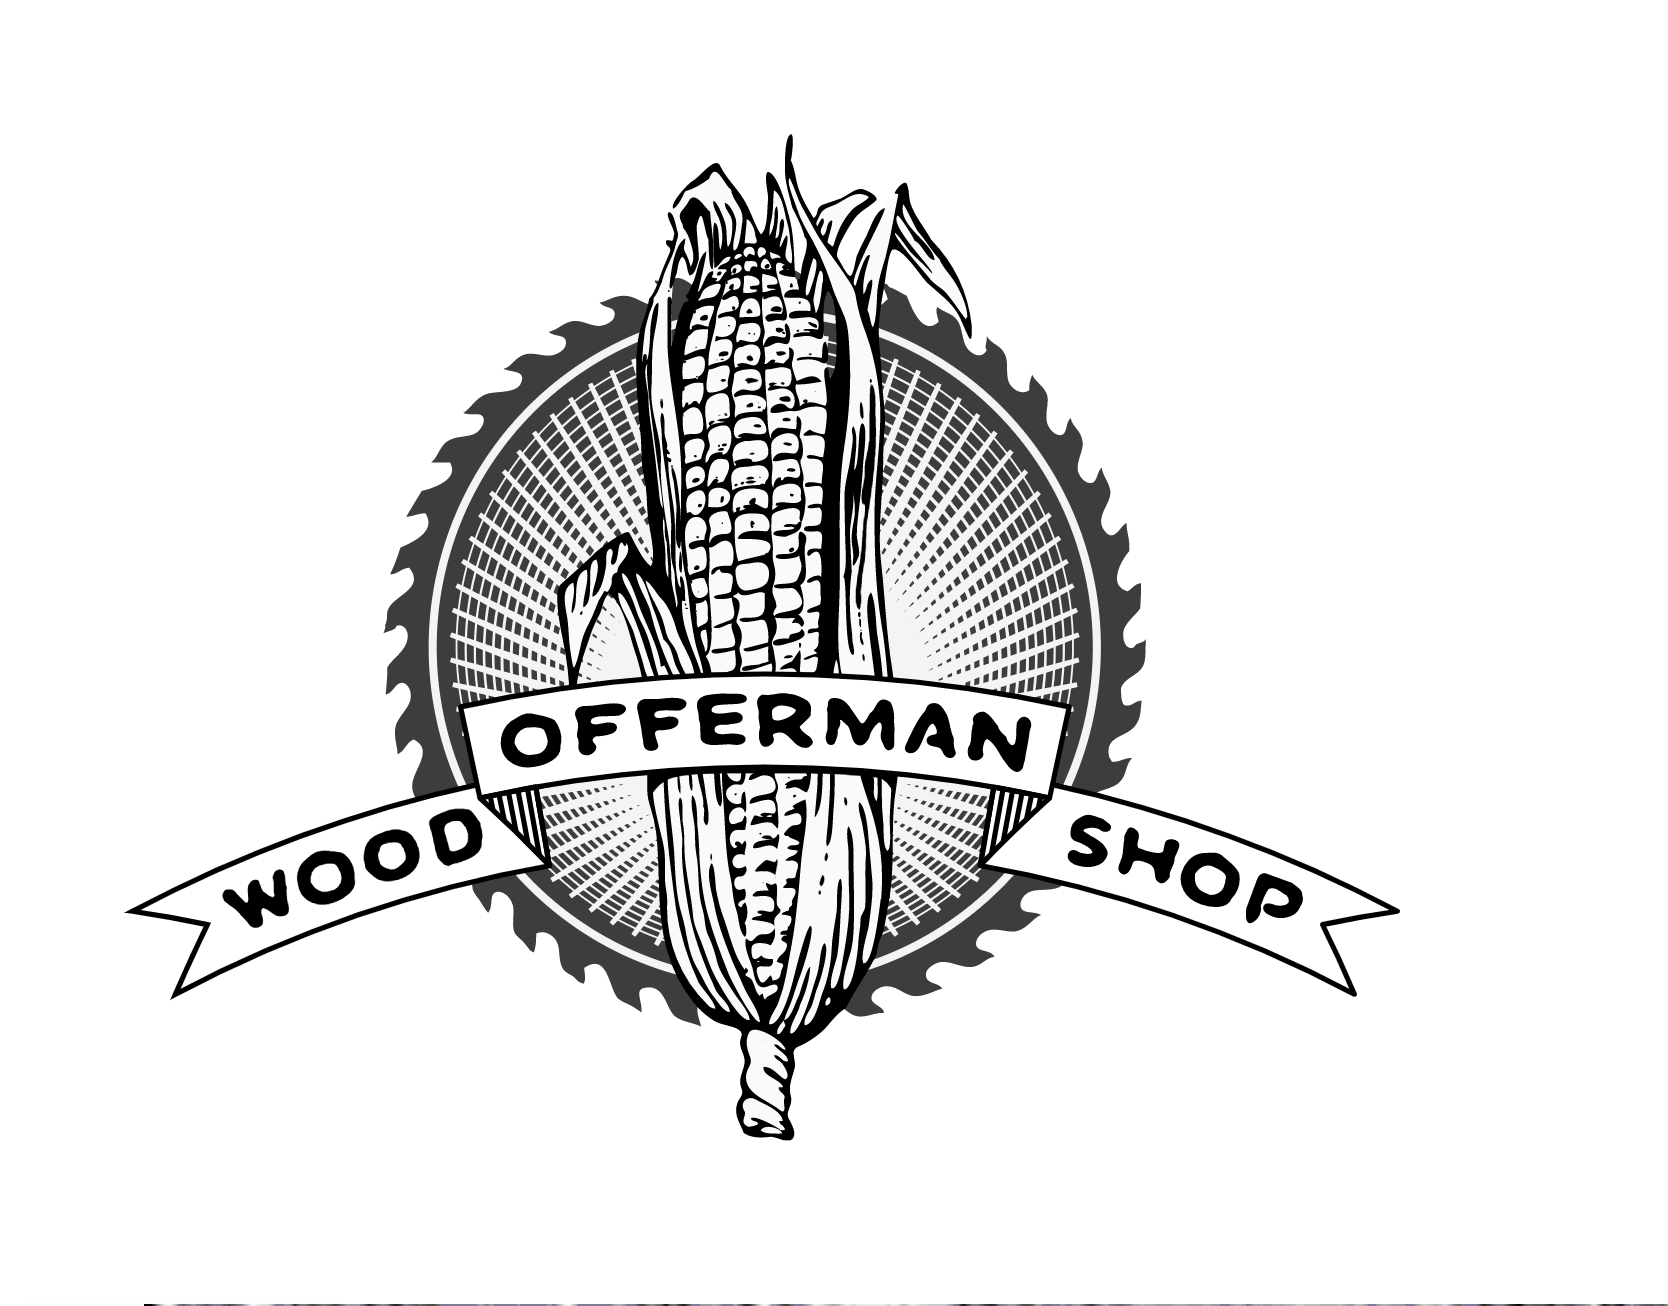 9 Best Woodworkers\' Logos and How to Make Your Own for Free.